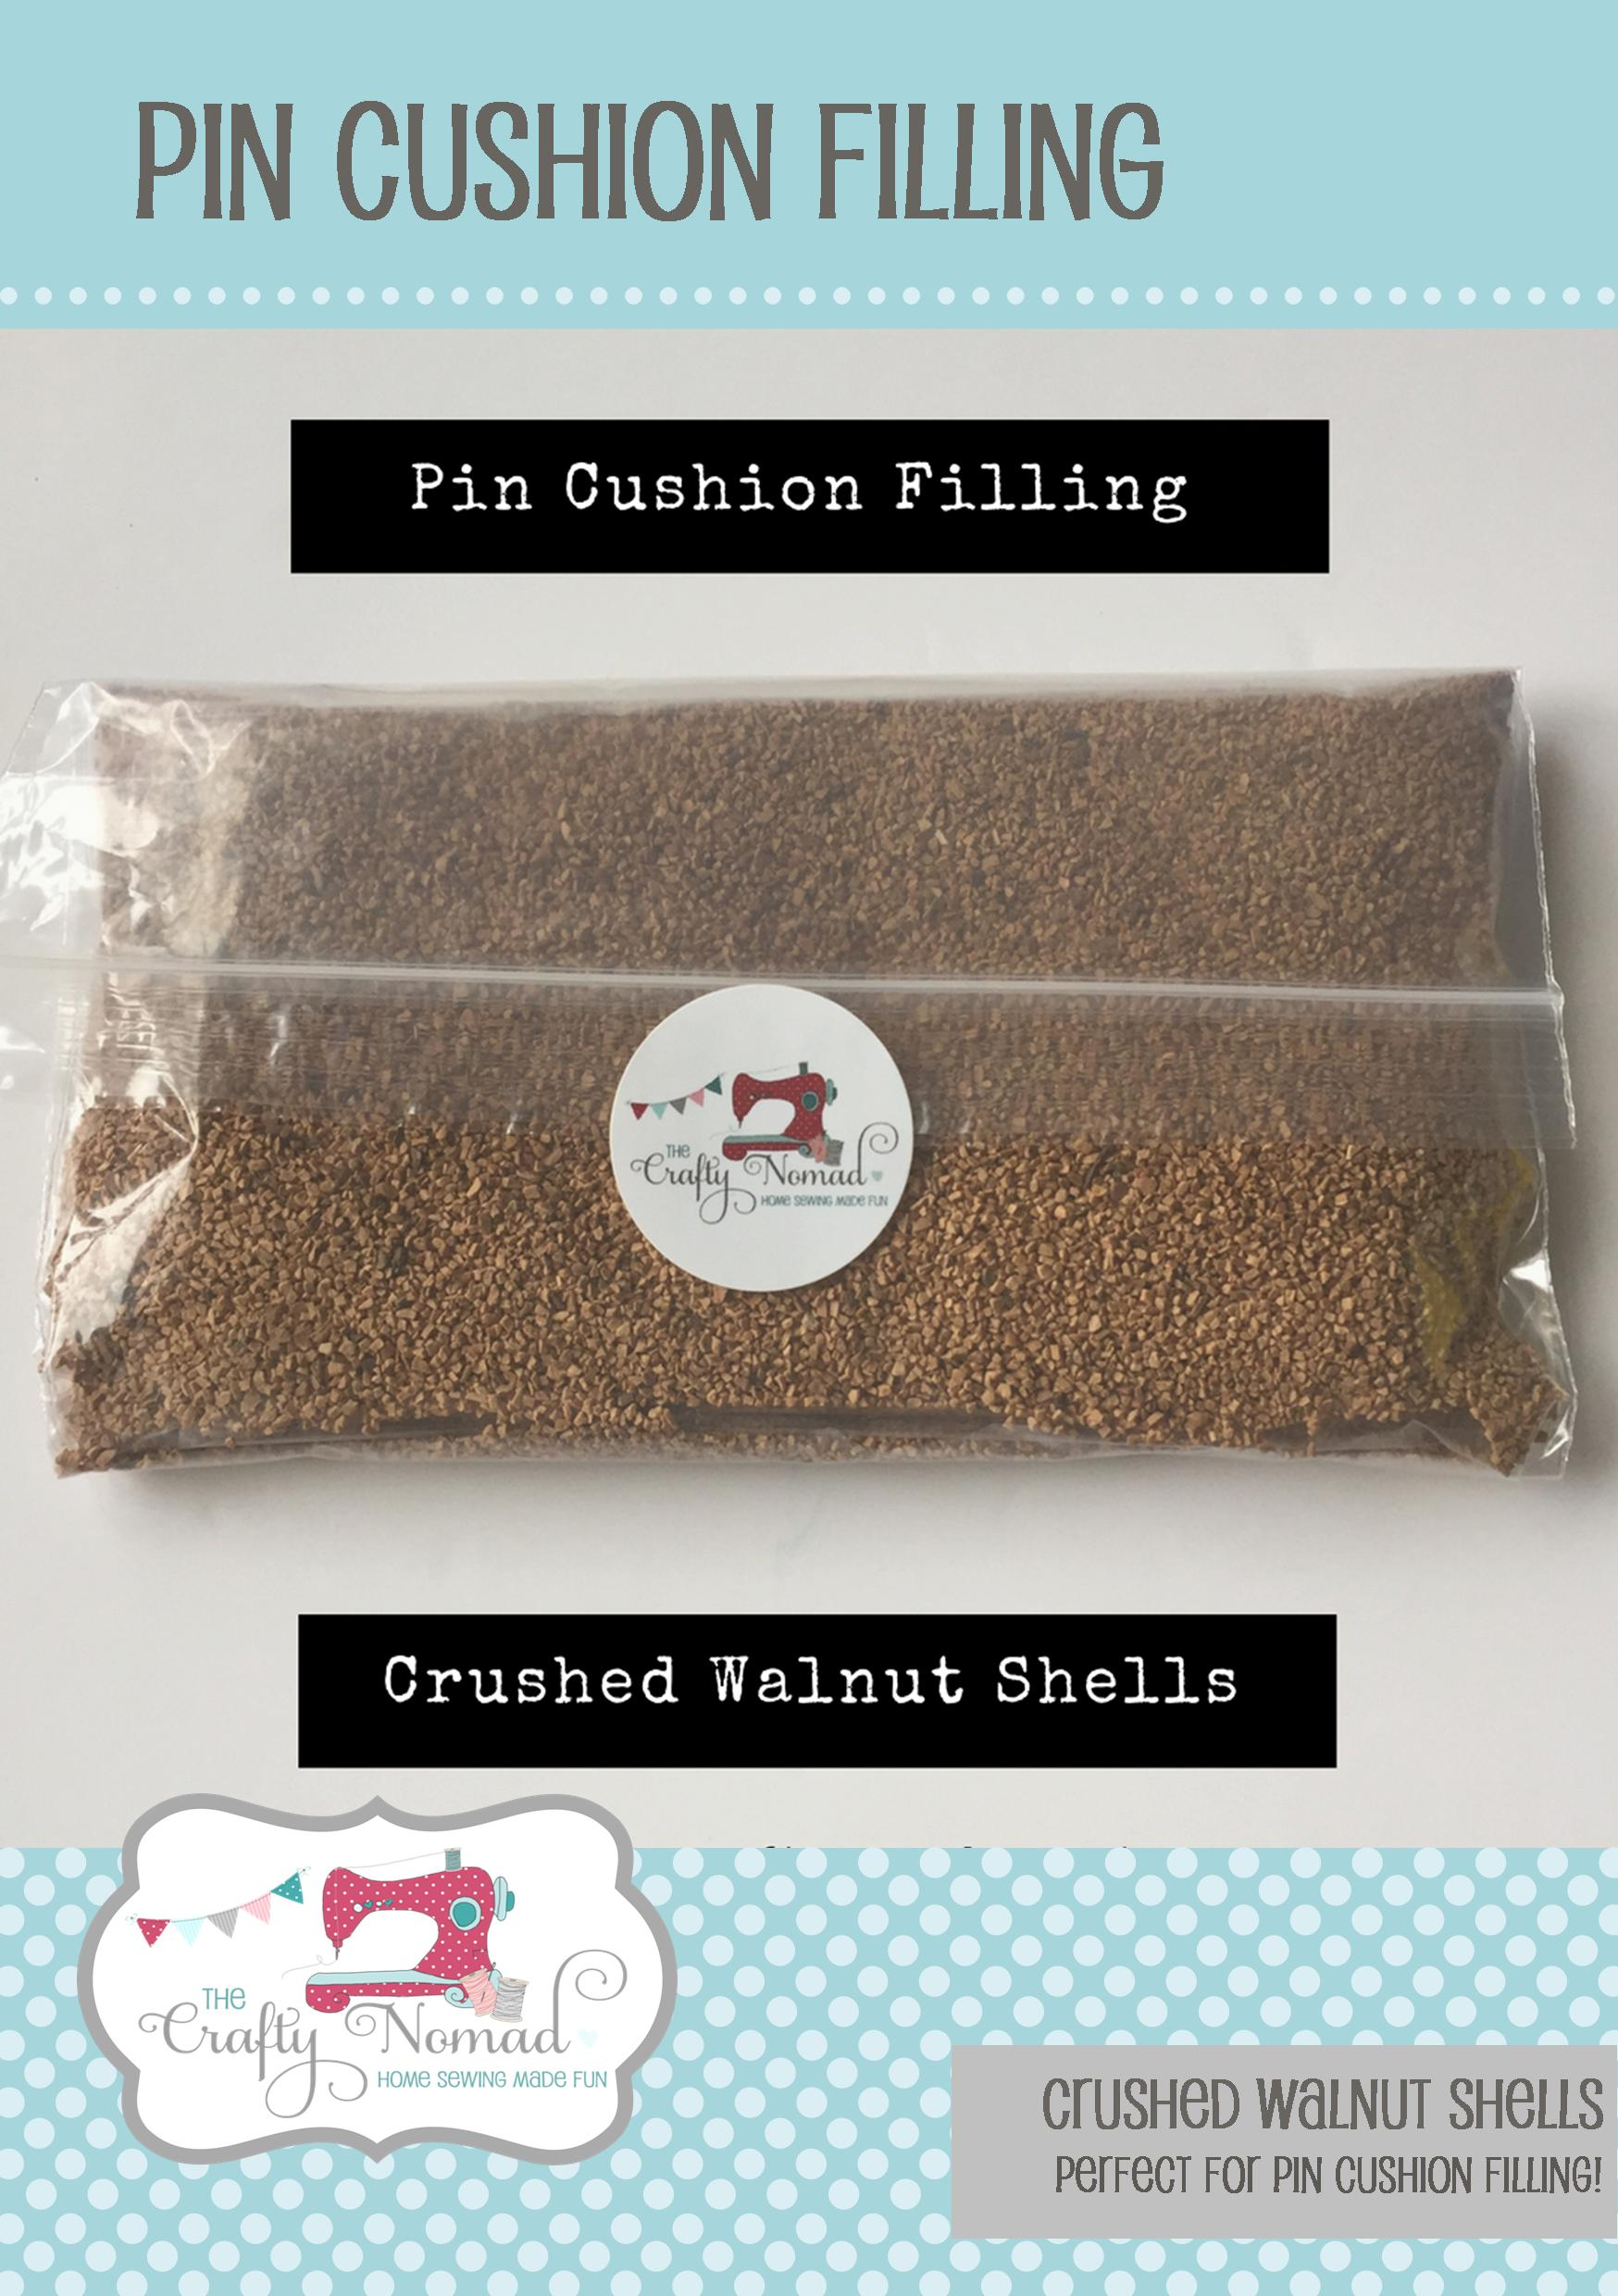 PIN CUSHION FILLING